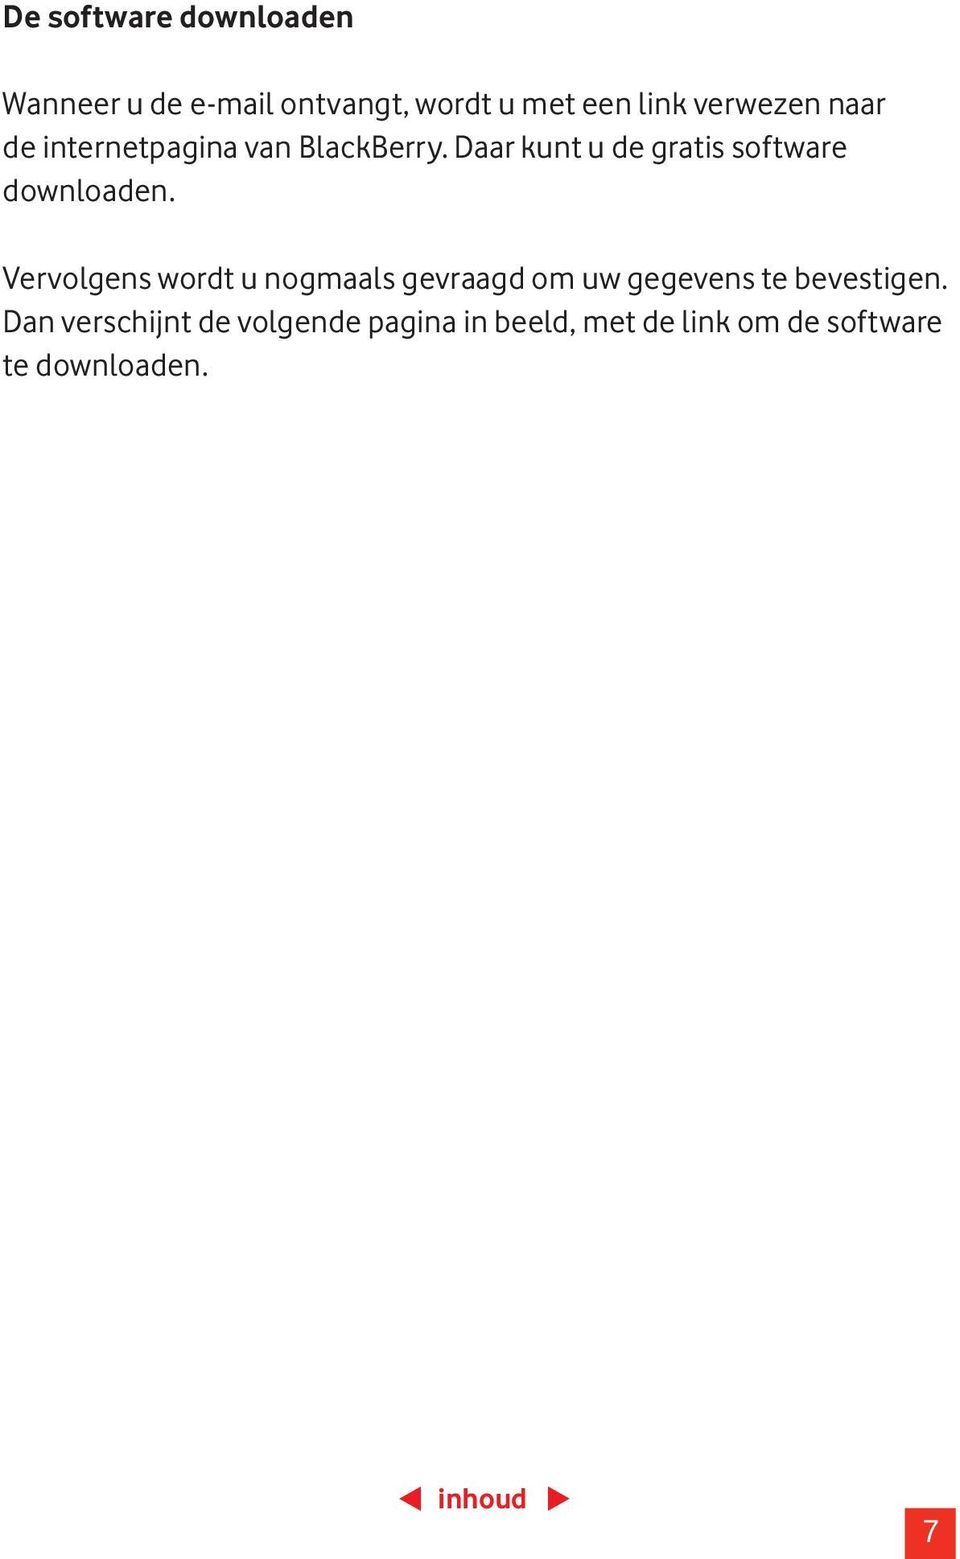 Daar kunt u de gratis software downloaden.